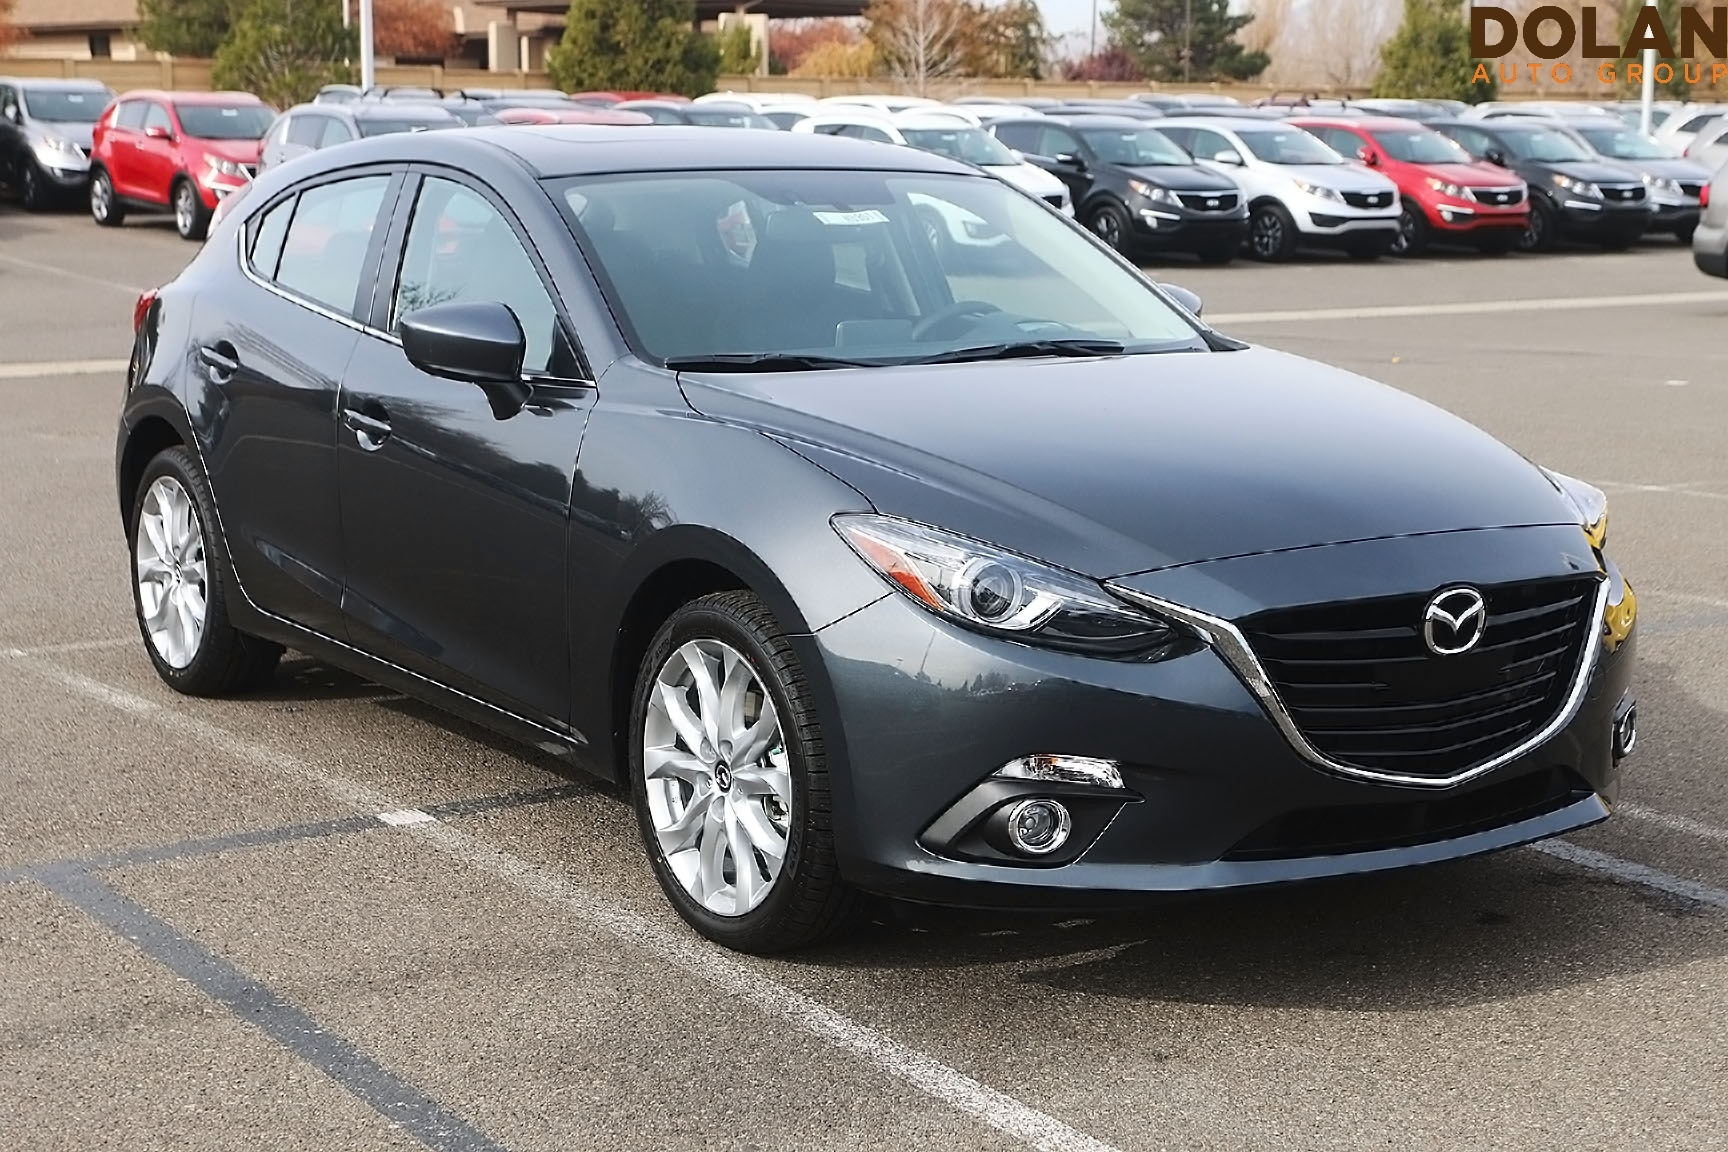 dolan mazda 2015 mazda3 hatchback for sale in reno. Black Bedroom Furniture Sets. Home Design Ideas